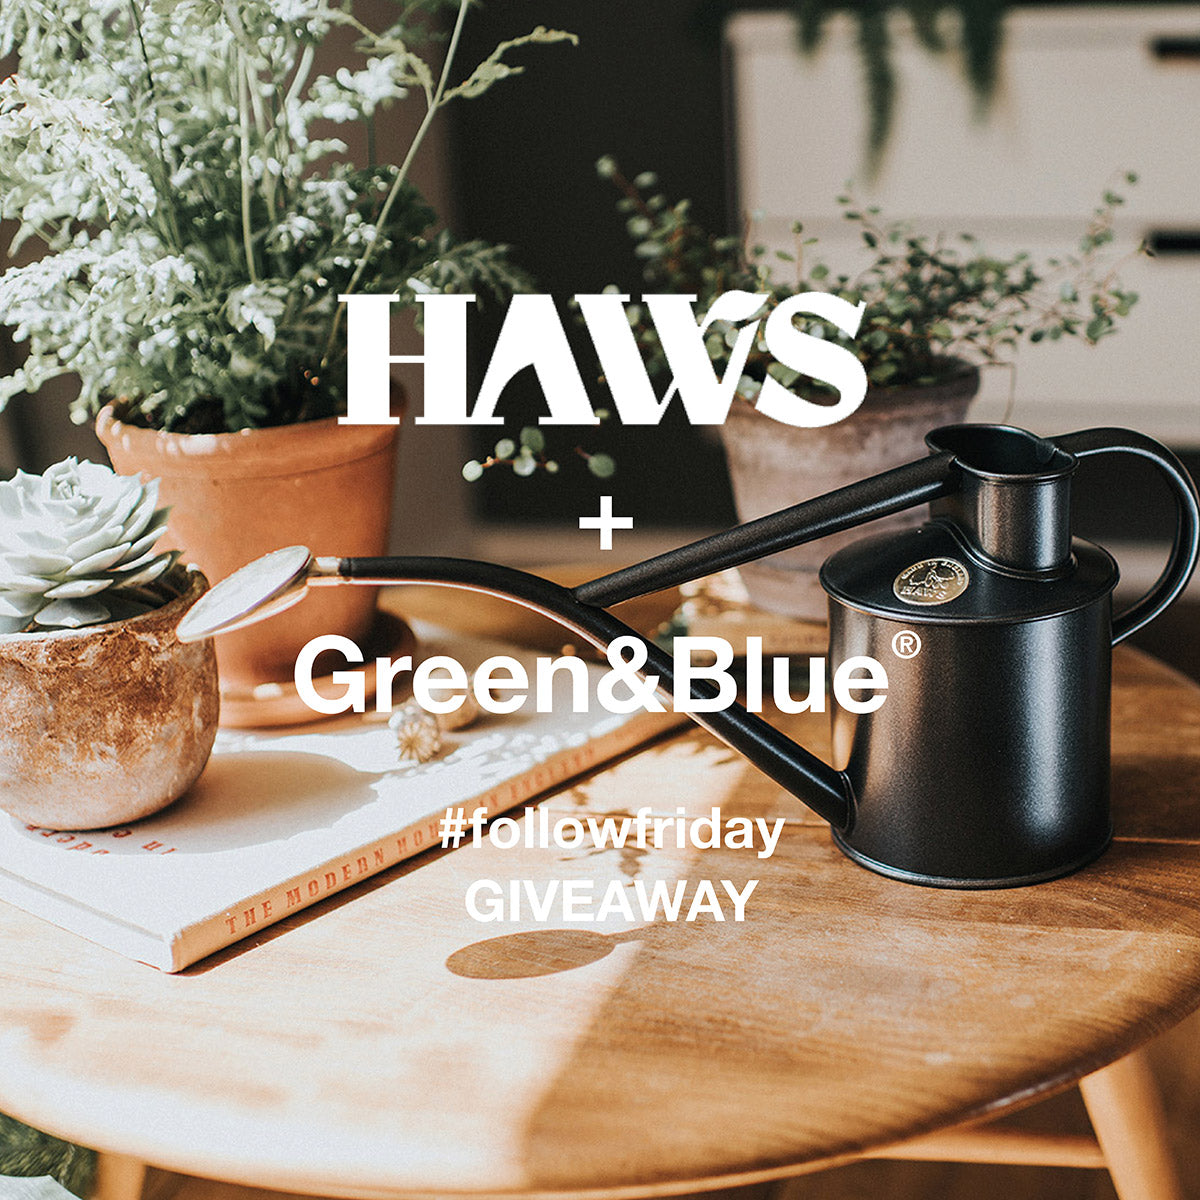 Haws follow friday competition